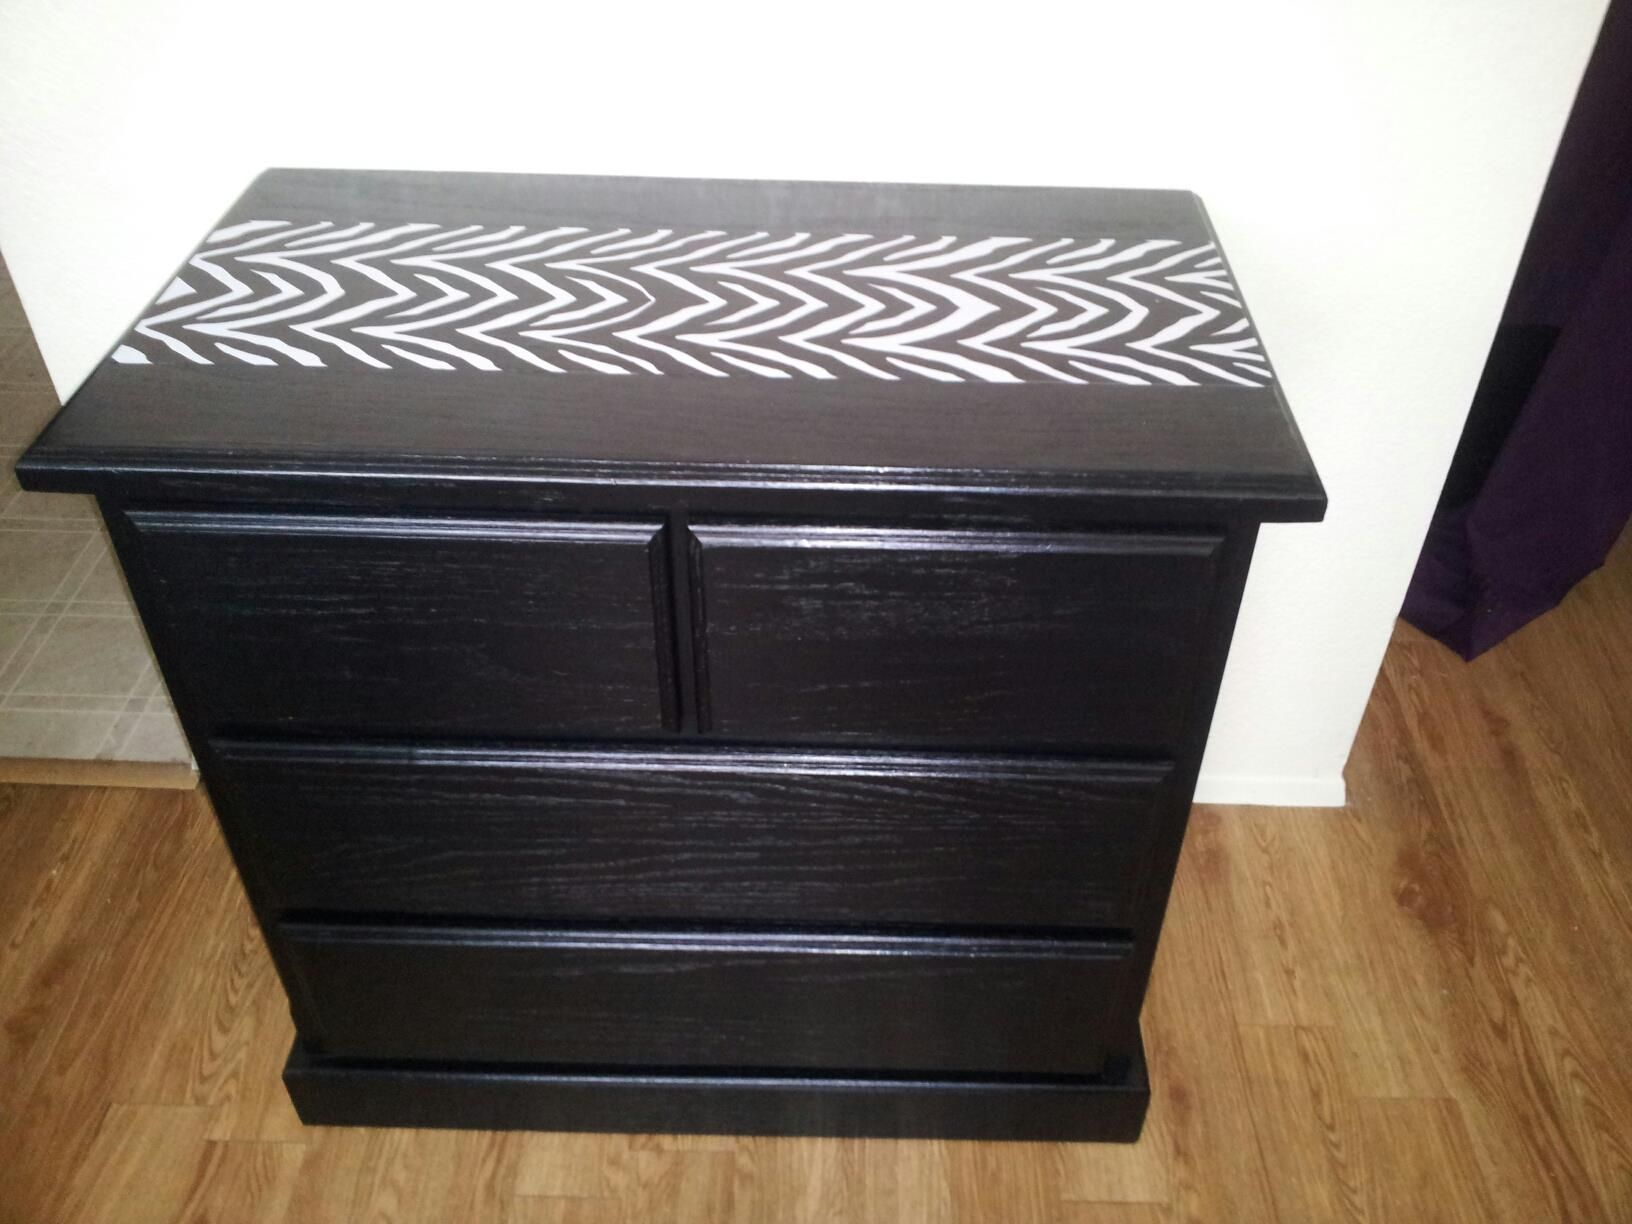 4 drawer dresser has been repainted in a high gloss black paint with